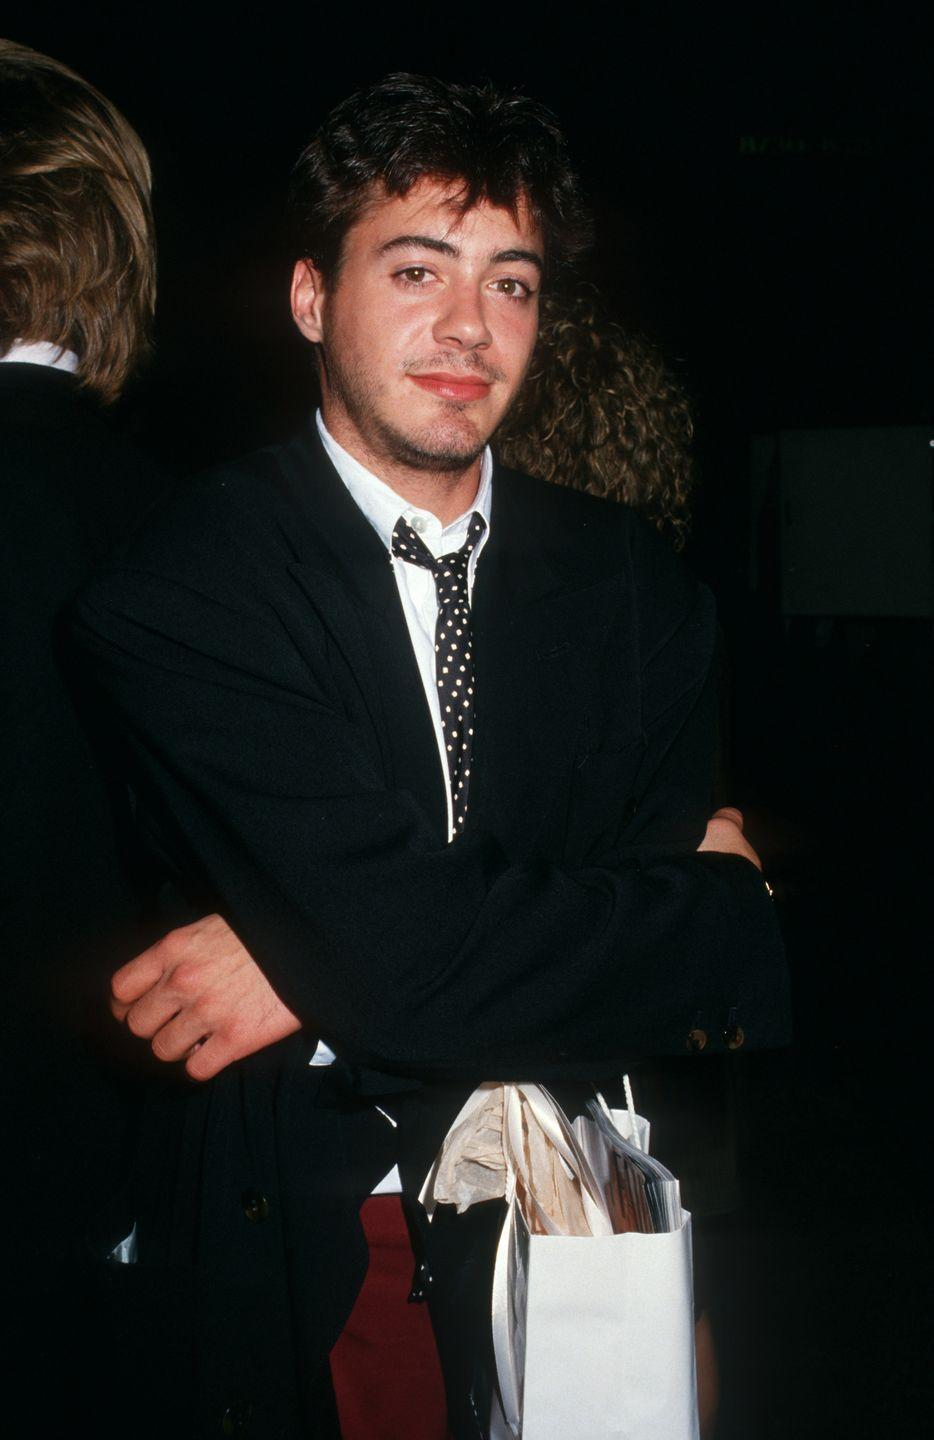 """<p>Heartthrob Robert Downey Jr. was once considered a part of the """"Brat Pack"""" after appearing in <em>Weird Science </em>(1985), <em>Back to School</em> (1986), <em>Less Than Zero</em> (1987), and <em>Johnny Be Hall </em>(1988). He was also a semi-regular cast member of <em>Saturday Night Live </em>in 1985, which helped jumpstart his career. </p>"""